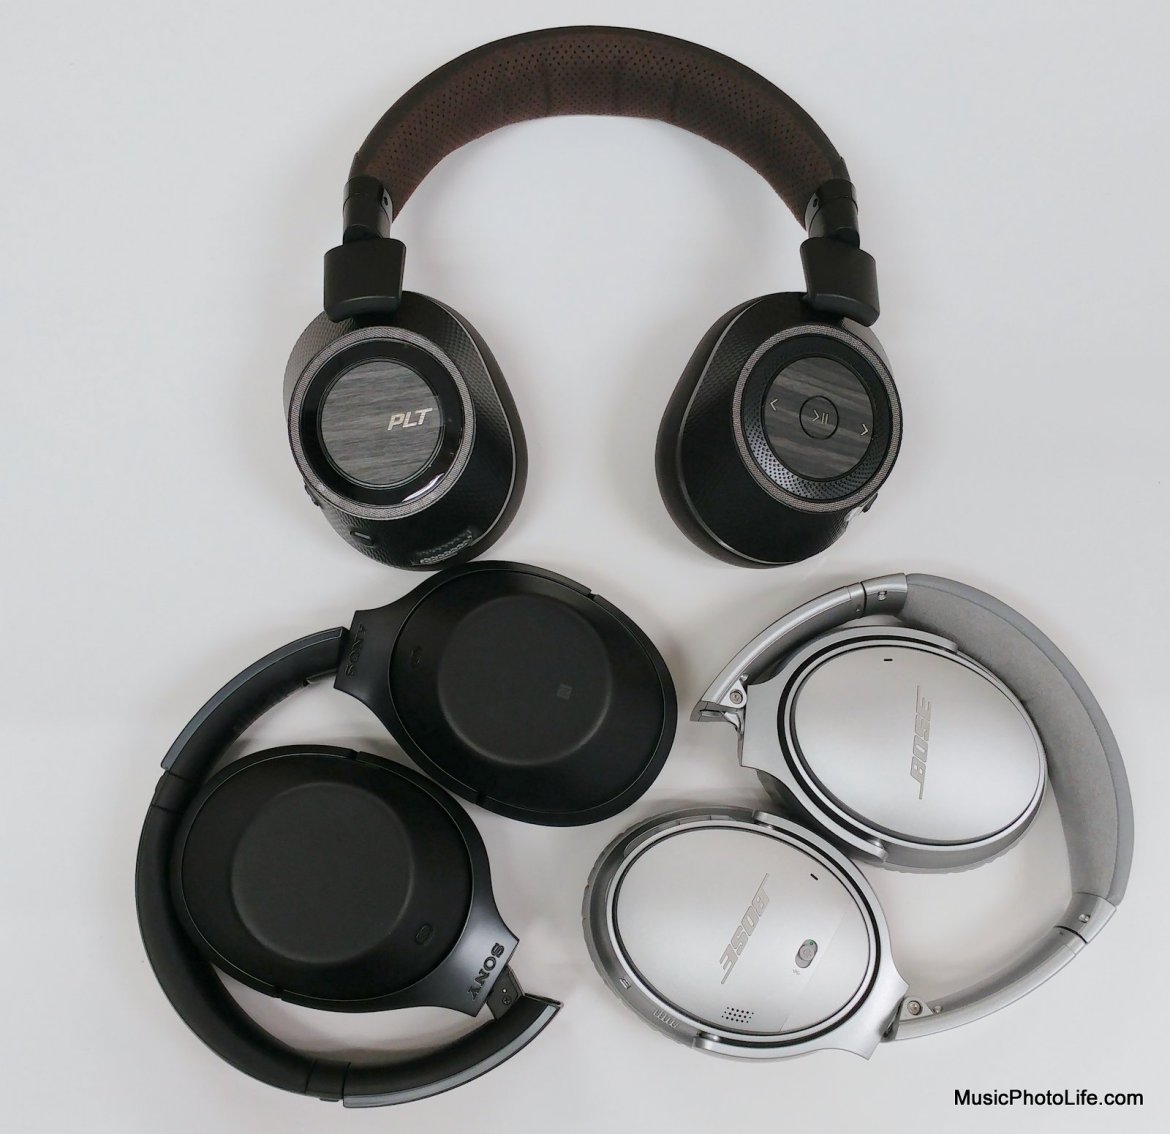 Best ANC headphones compare review by musicphotolife.com